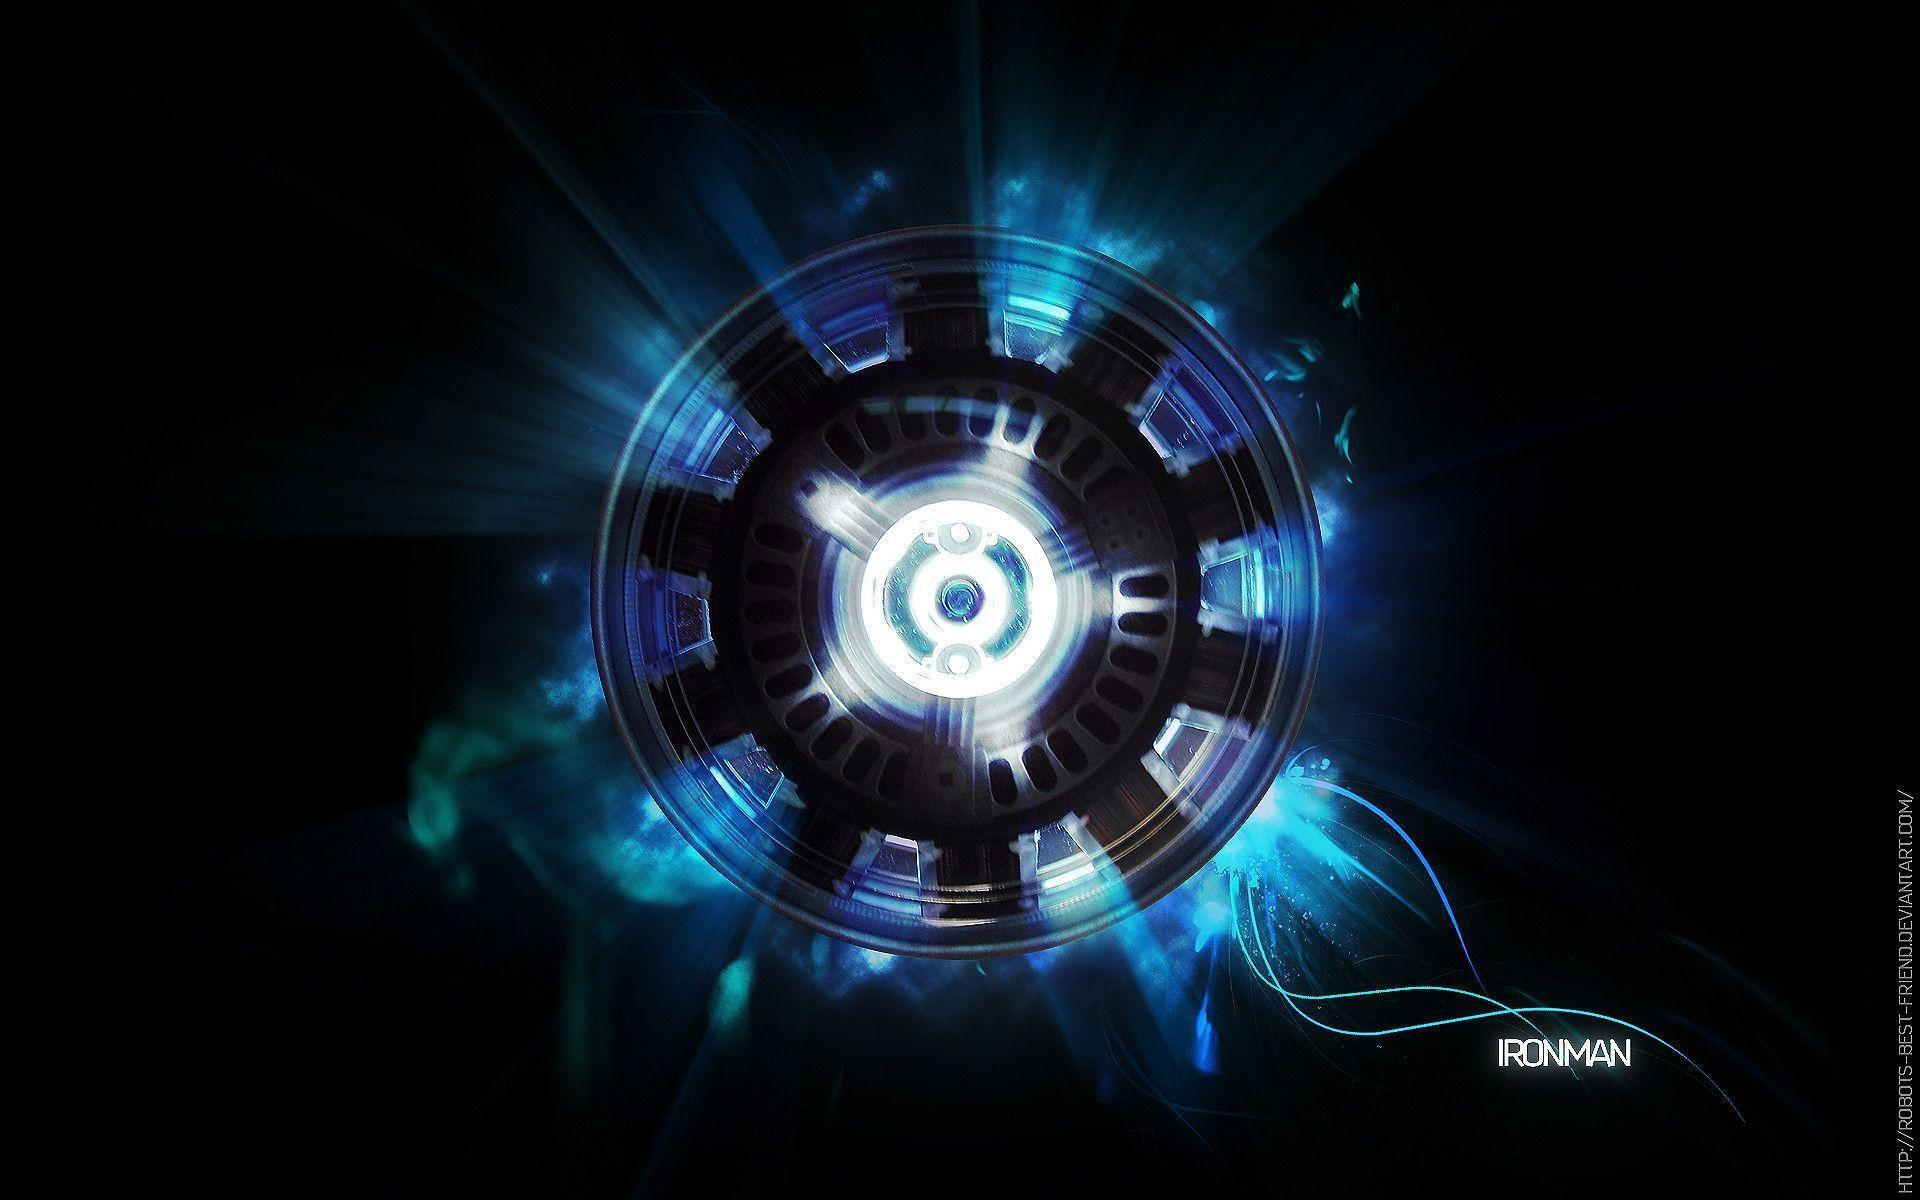 Iron Man Energy Chest HD Wallpaper - HD Wallpaper Collection - HD ...